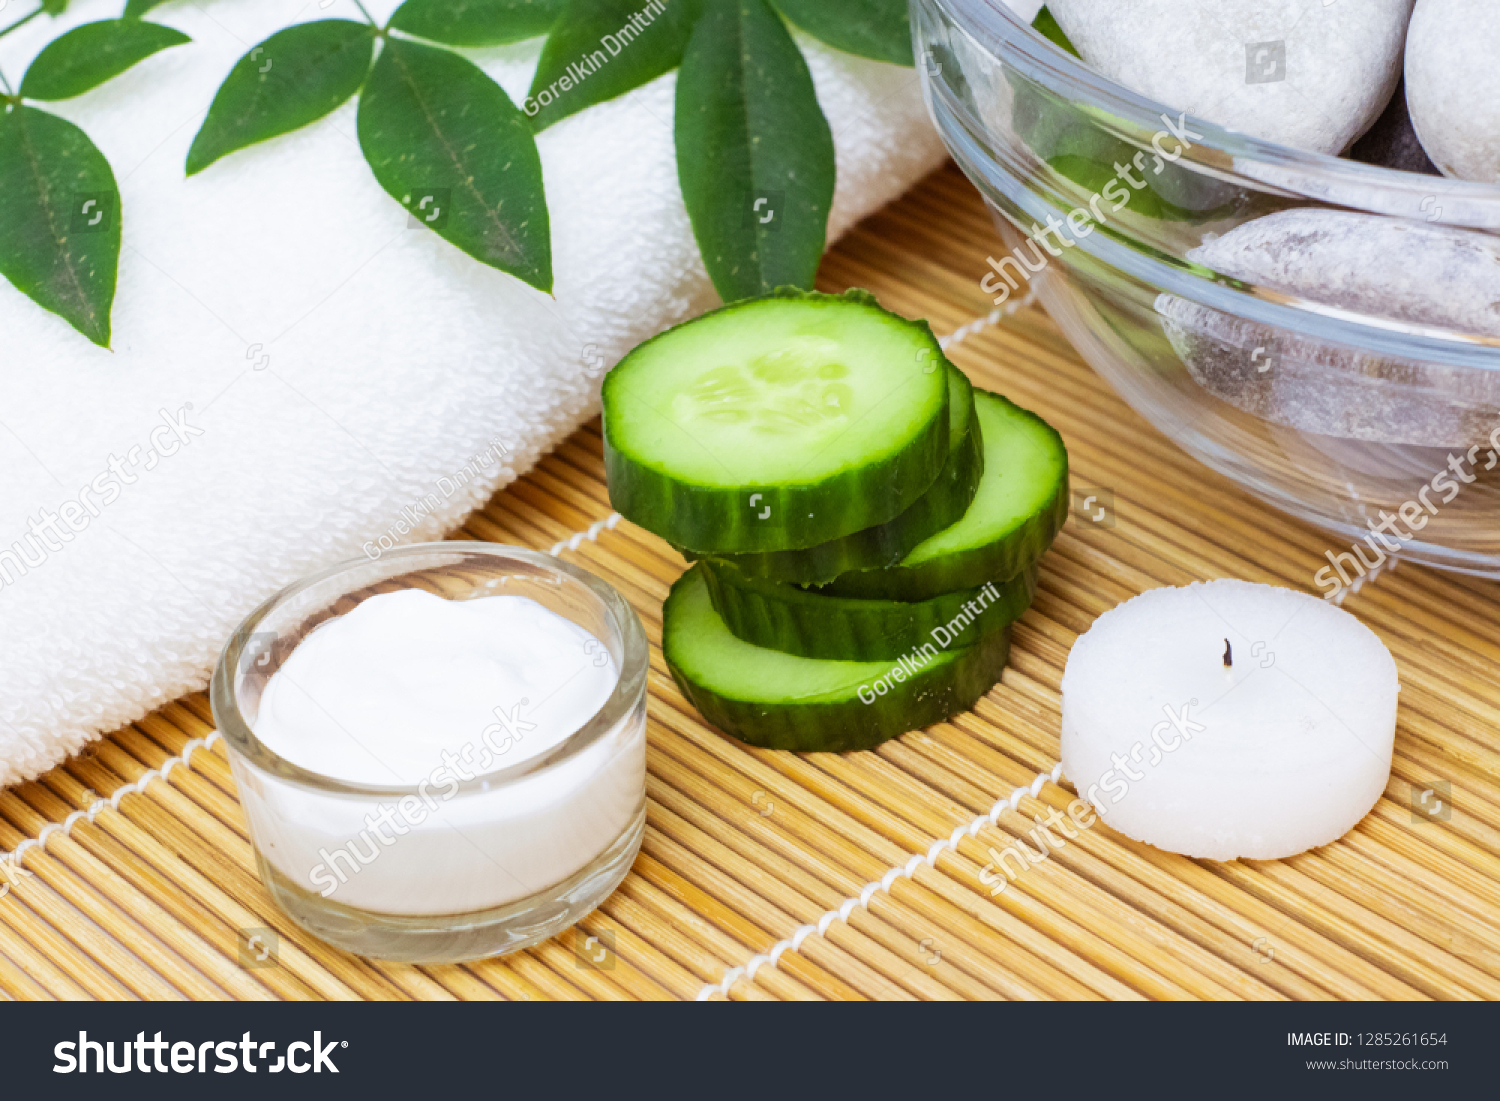 Natural Skin Care Products View Ingredients Stock Photo (Edit Now